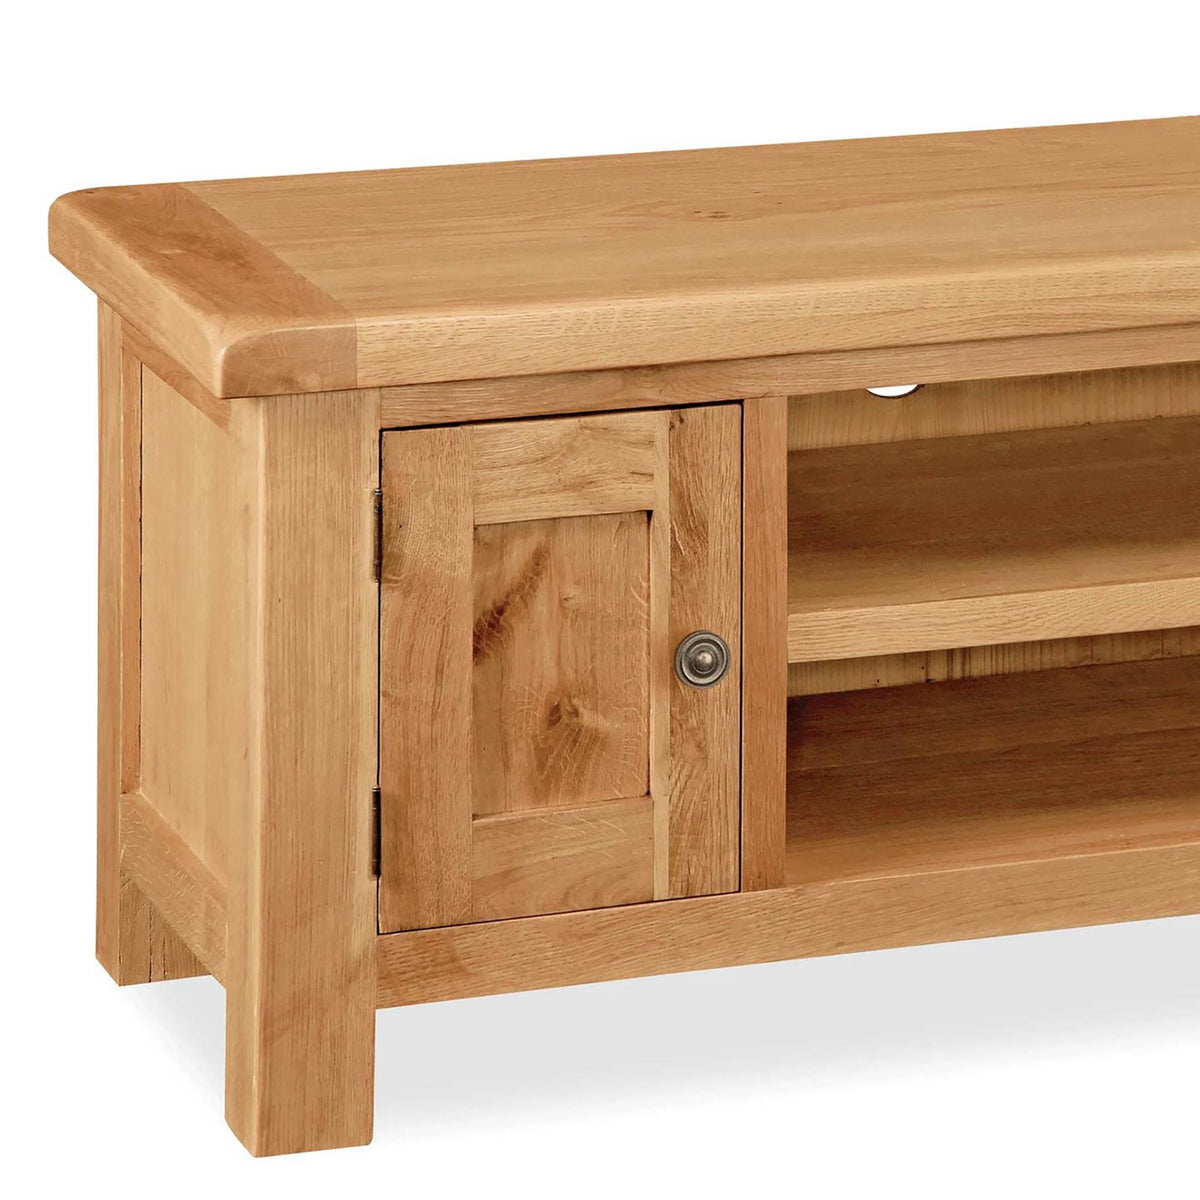 Sidmouth Oak 120cm TV Stand - Close Up of Cupboard